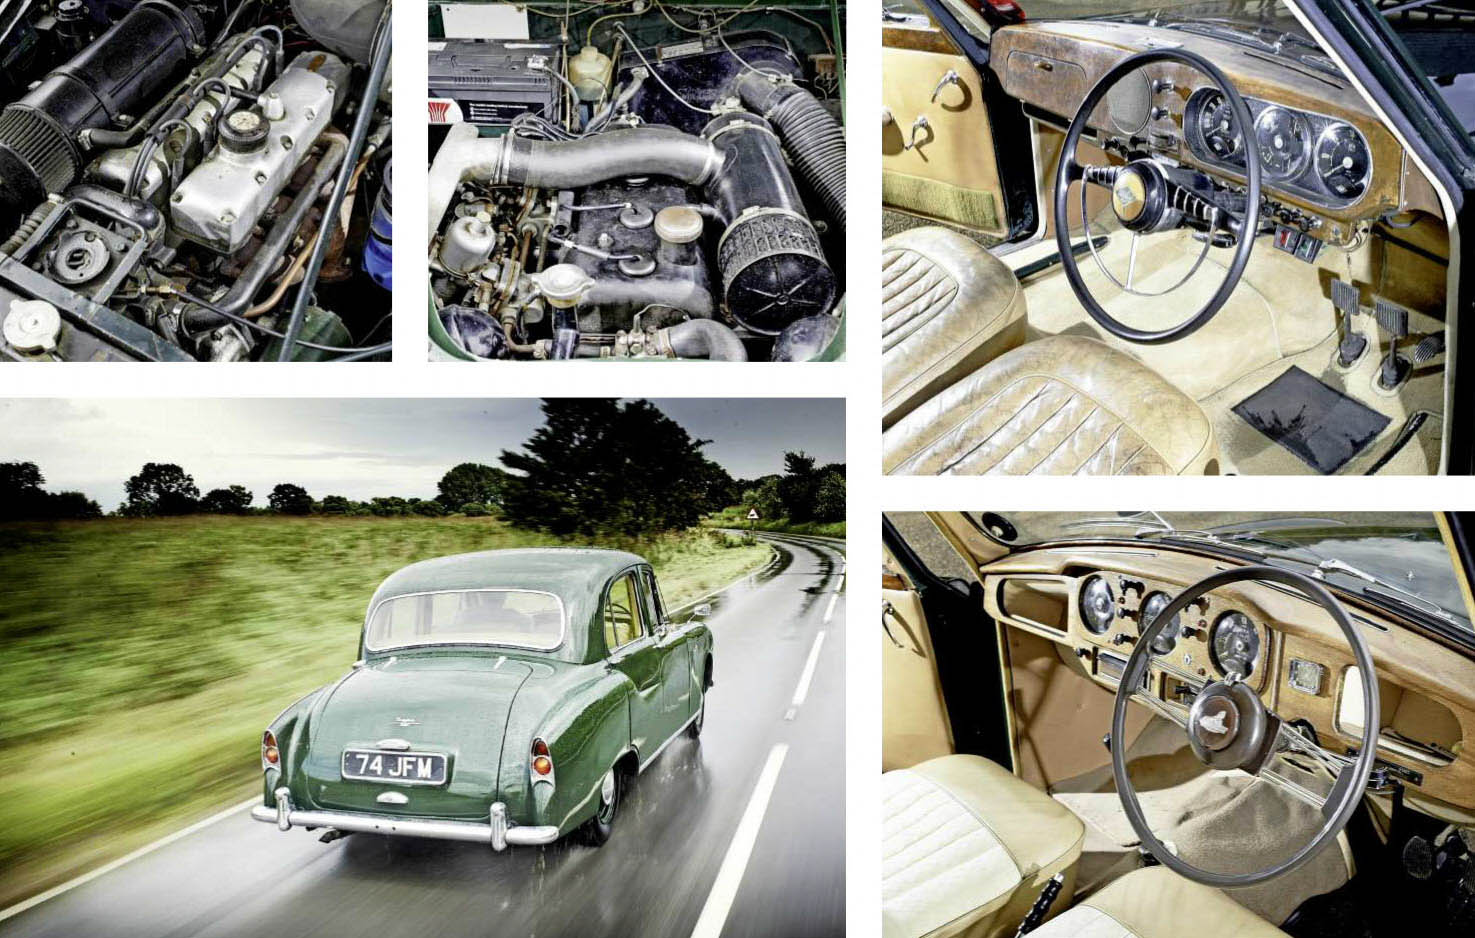 1956 Armstrong Siddeley Sapphire 234 vs. 1953 Riley Pathfinder road test